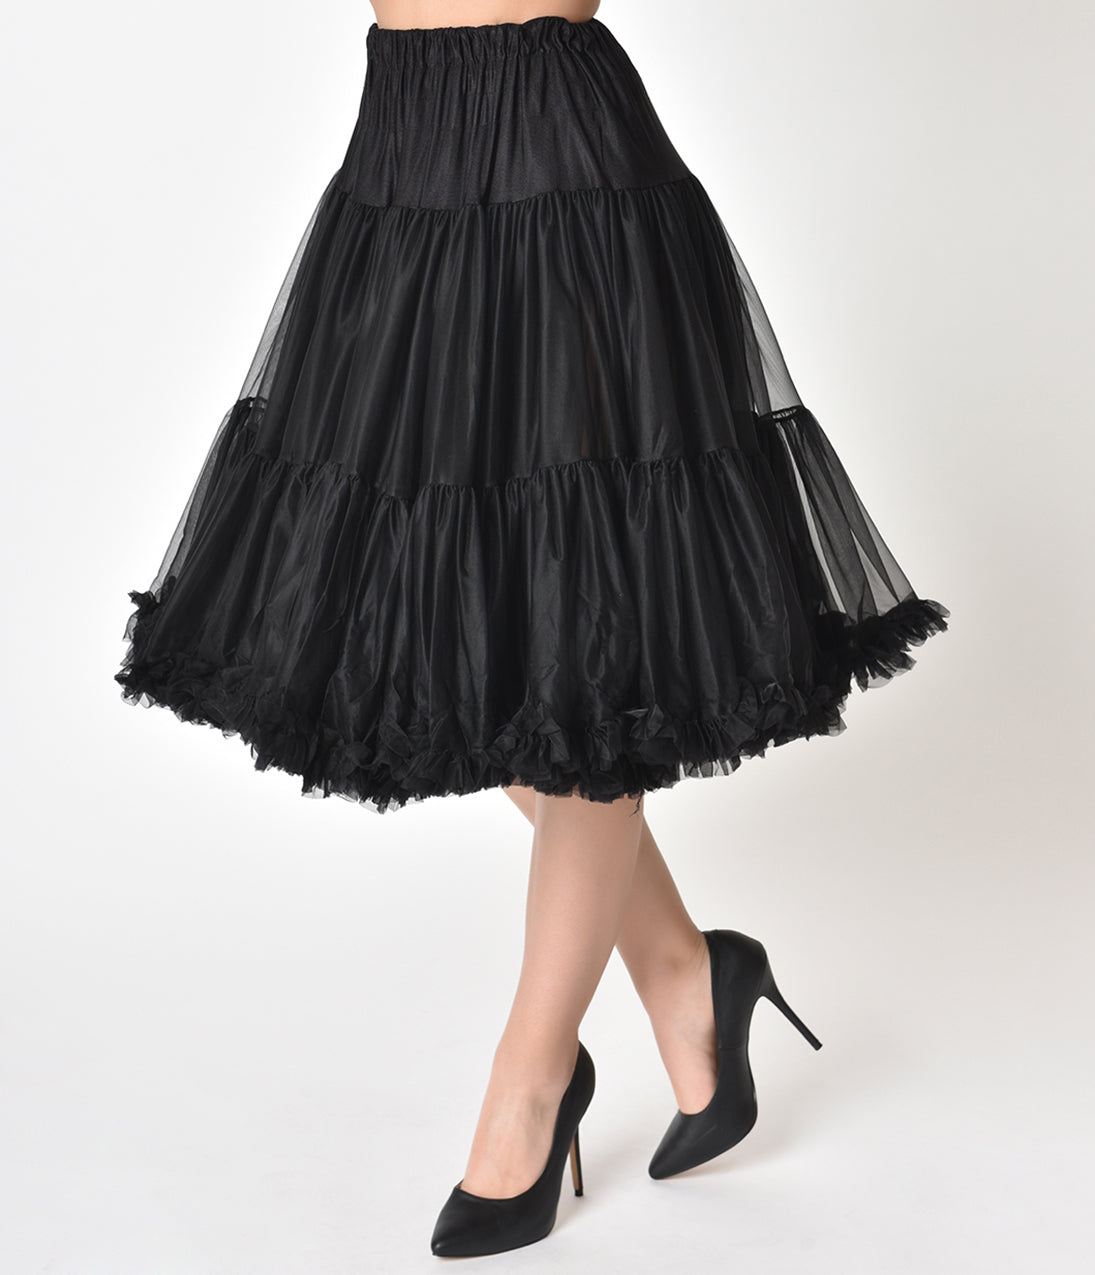 Crinoline Skirt | Crinoline Slips | Crinoline Petticoat Unique Vintage 1950S Style Black Tea Length Ruffled Chiffon Petticoat Crinoline $68.00 AT vintagedancer.com